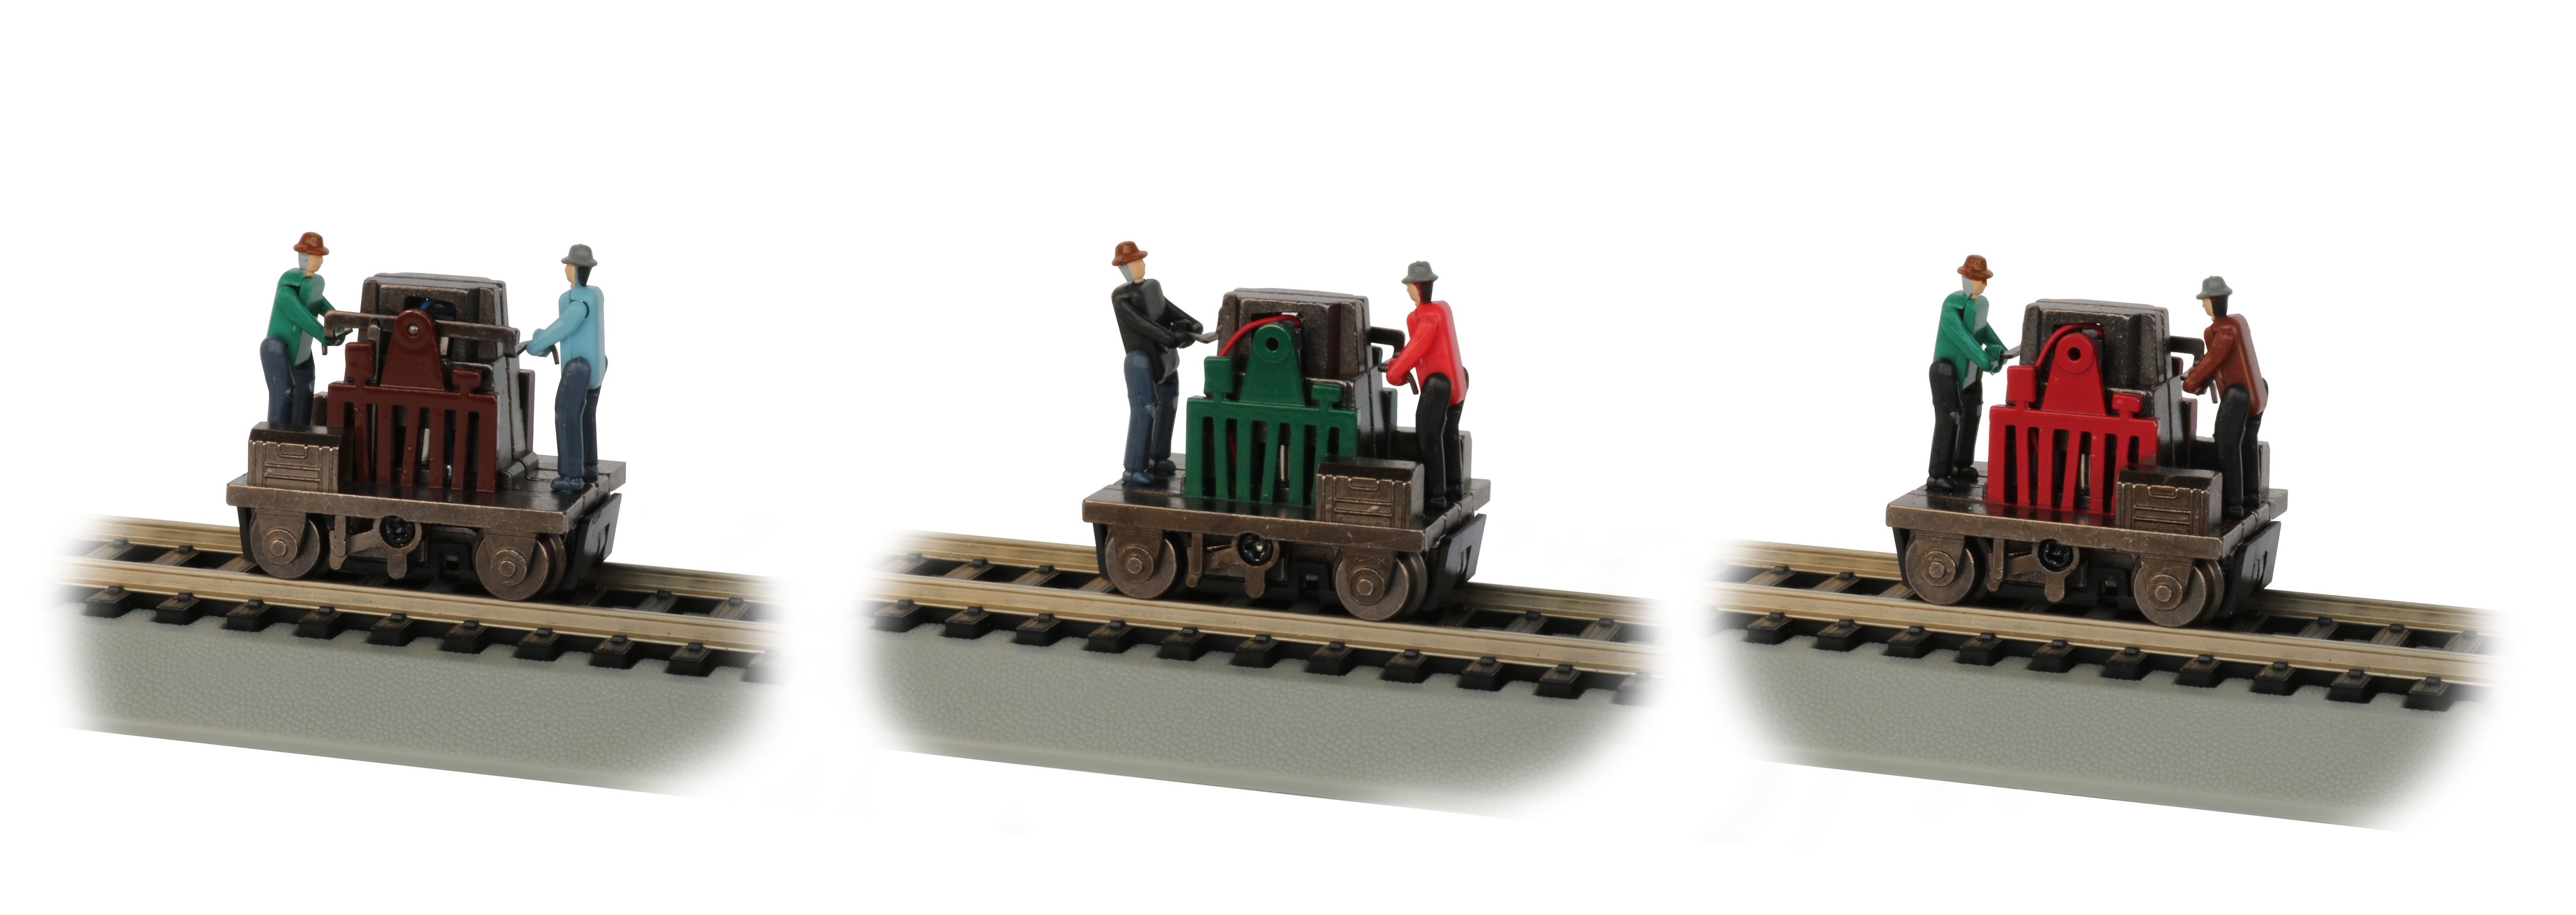 Gandy Dancer Operating Hand Car - Assorted Colors (HO Scale)